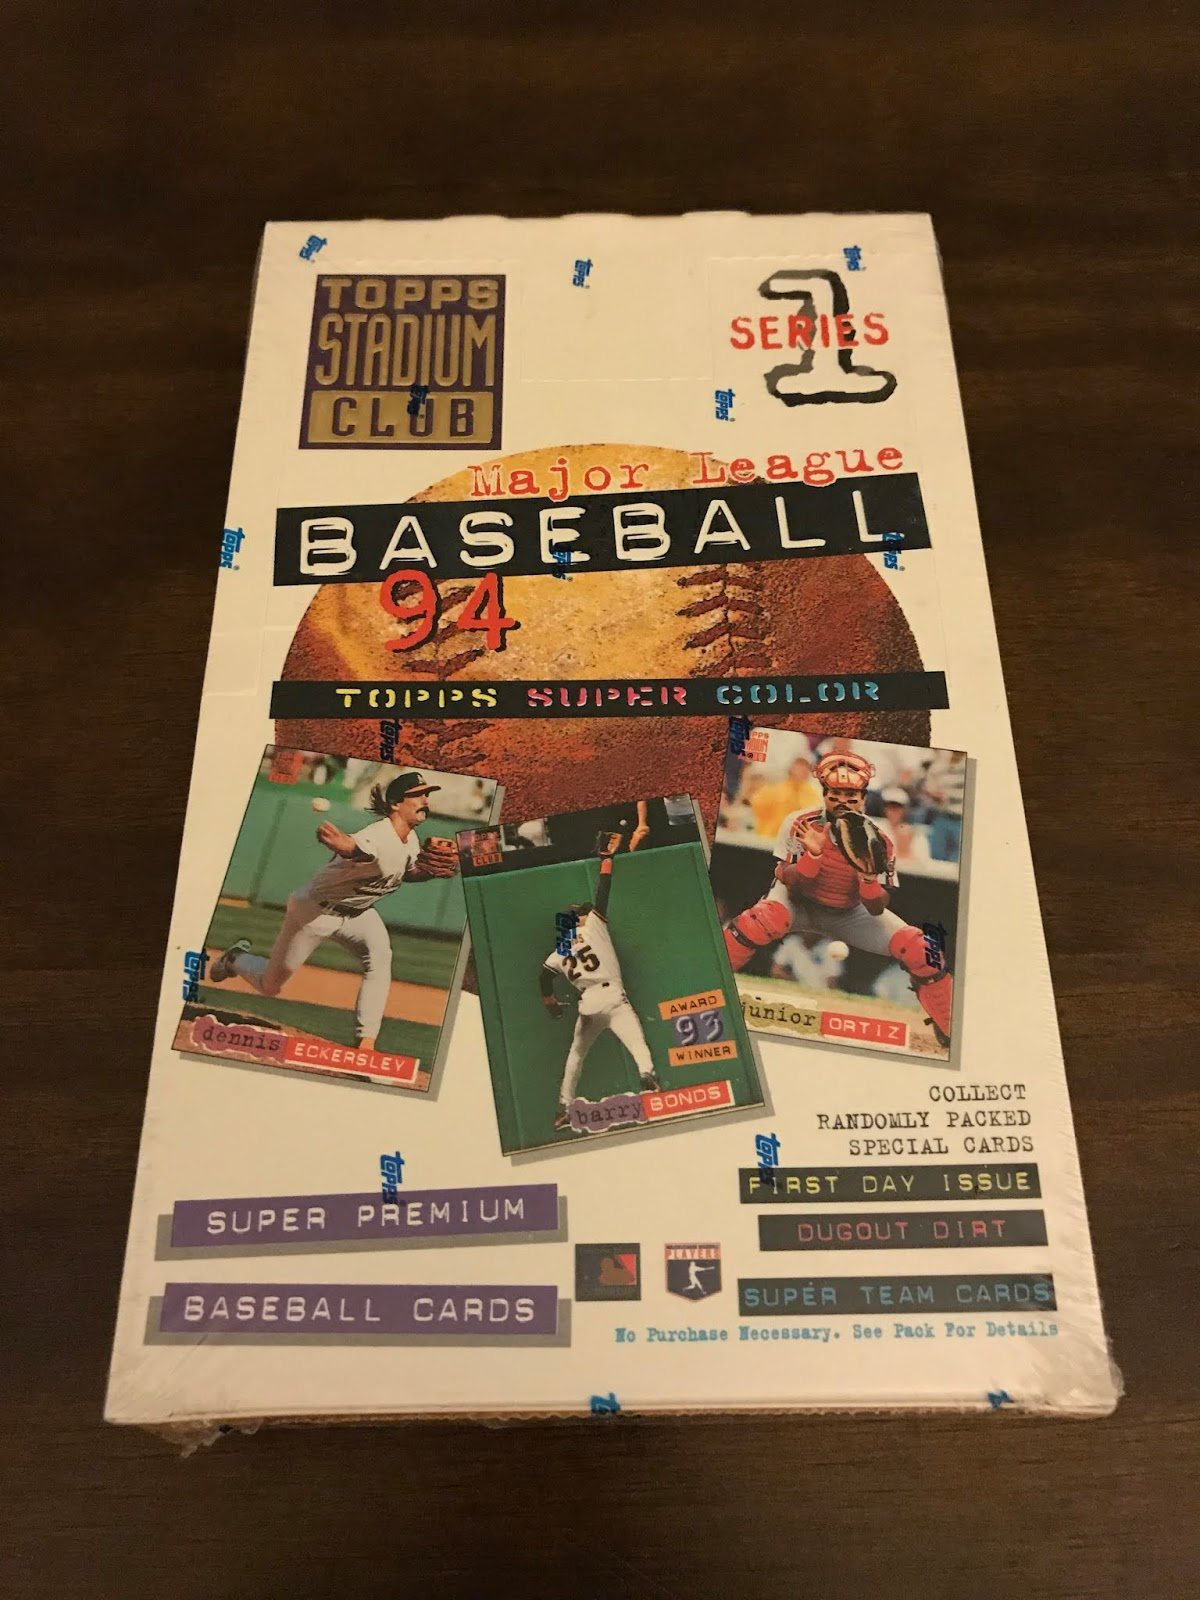 c8052f0751 I feel old saying that, considering this product is from 1994. Where have  the years gone?? Anyways, this week's break is 1994 Topps Stadium Club  Series 1 ...